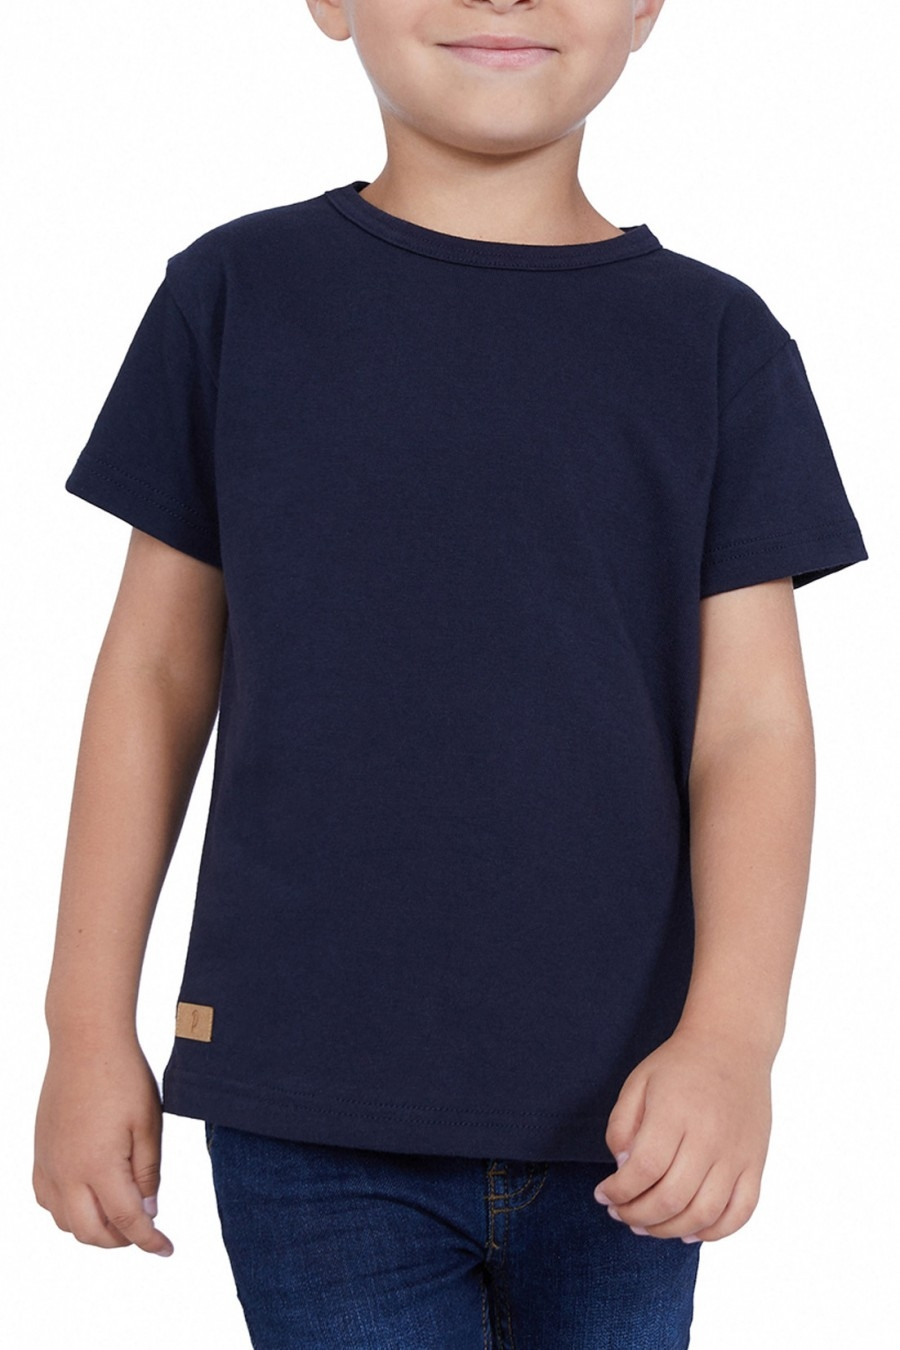 T-SHIRT ENFANT MANCHE COURTE COL ROND BLEU - Made in France & Coton bio